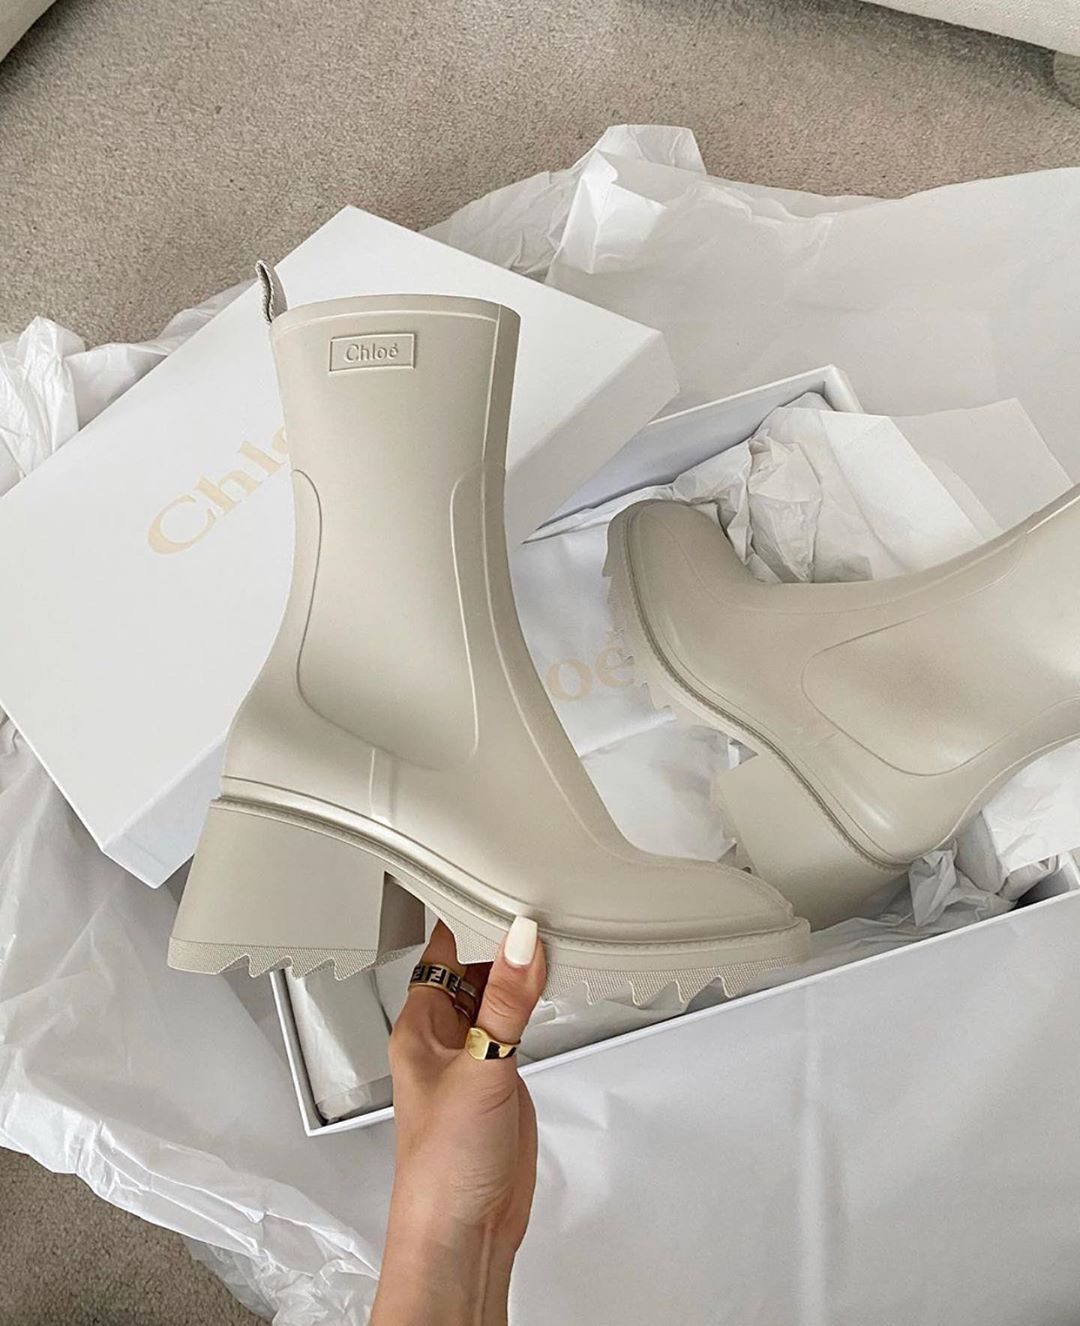 These Are So Cute Theloveforluxe Heres Cartier Cartieraddict In 2020 Fashion Shoes Boots Aesthetic Shoes